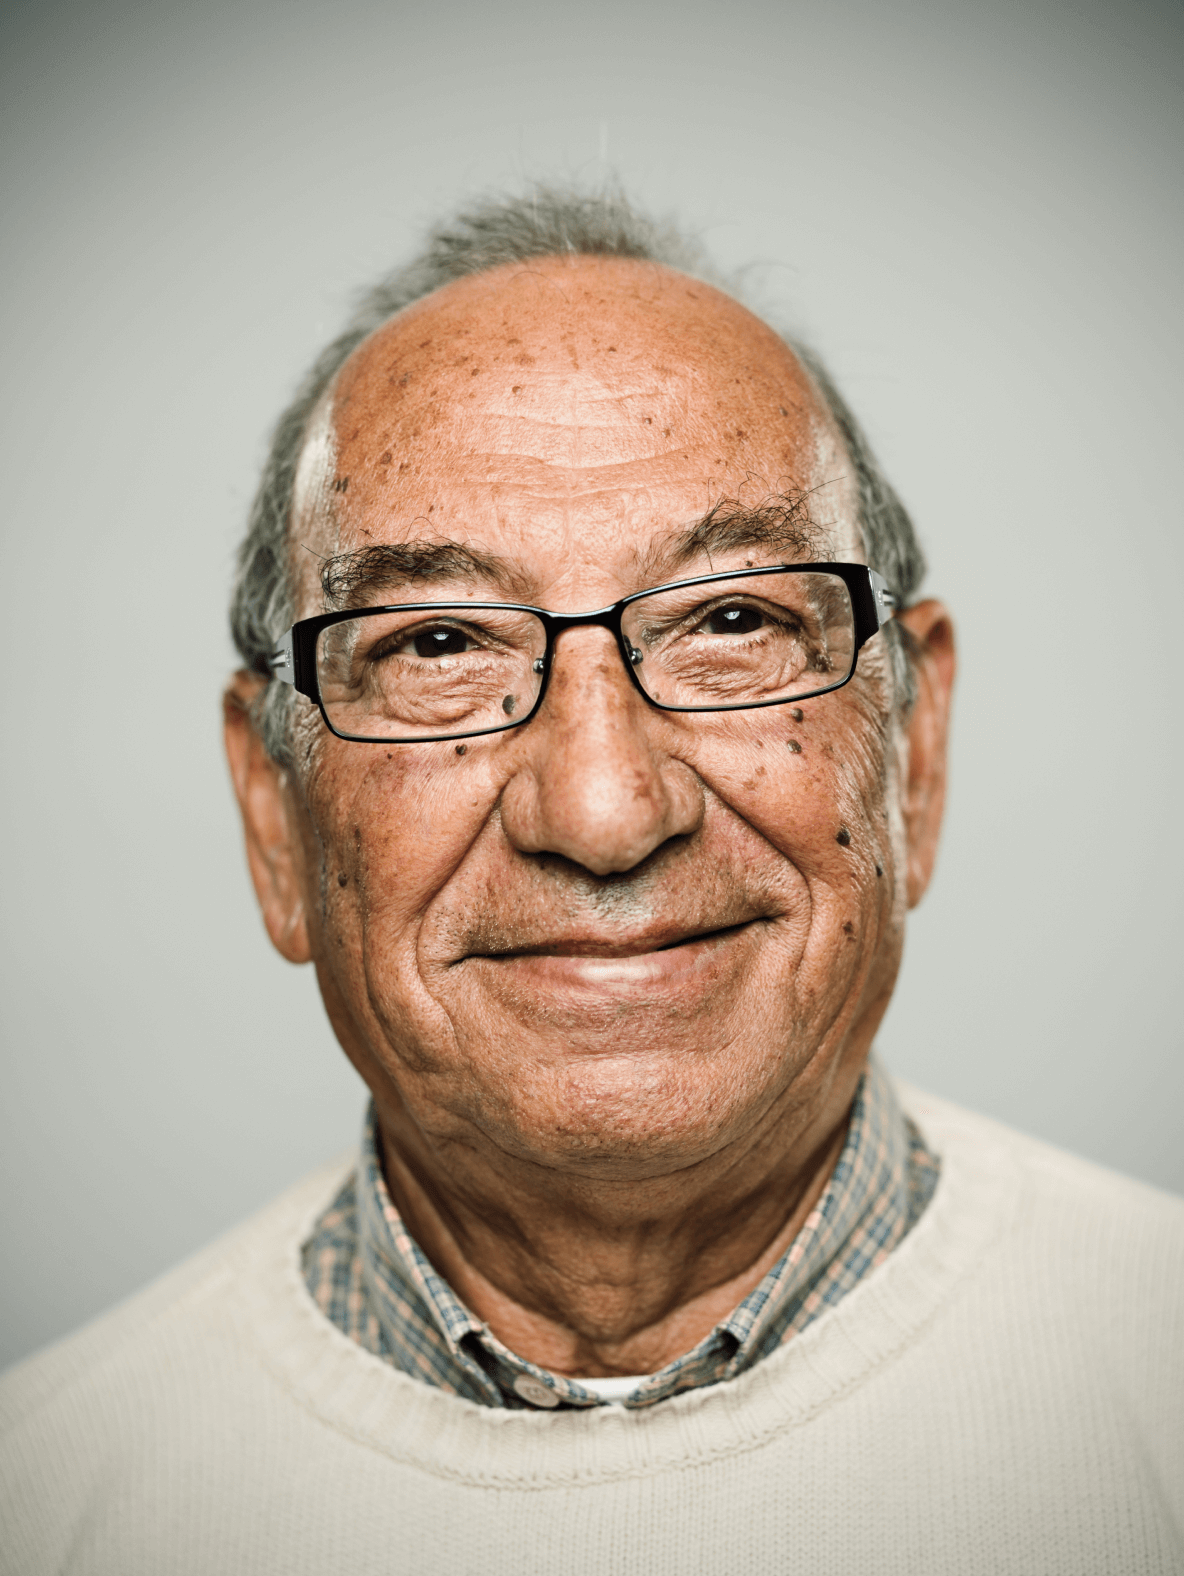 Smiling old man with glasses